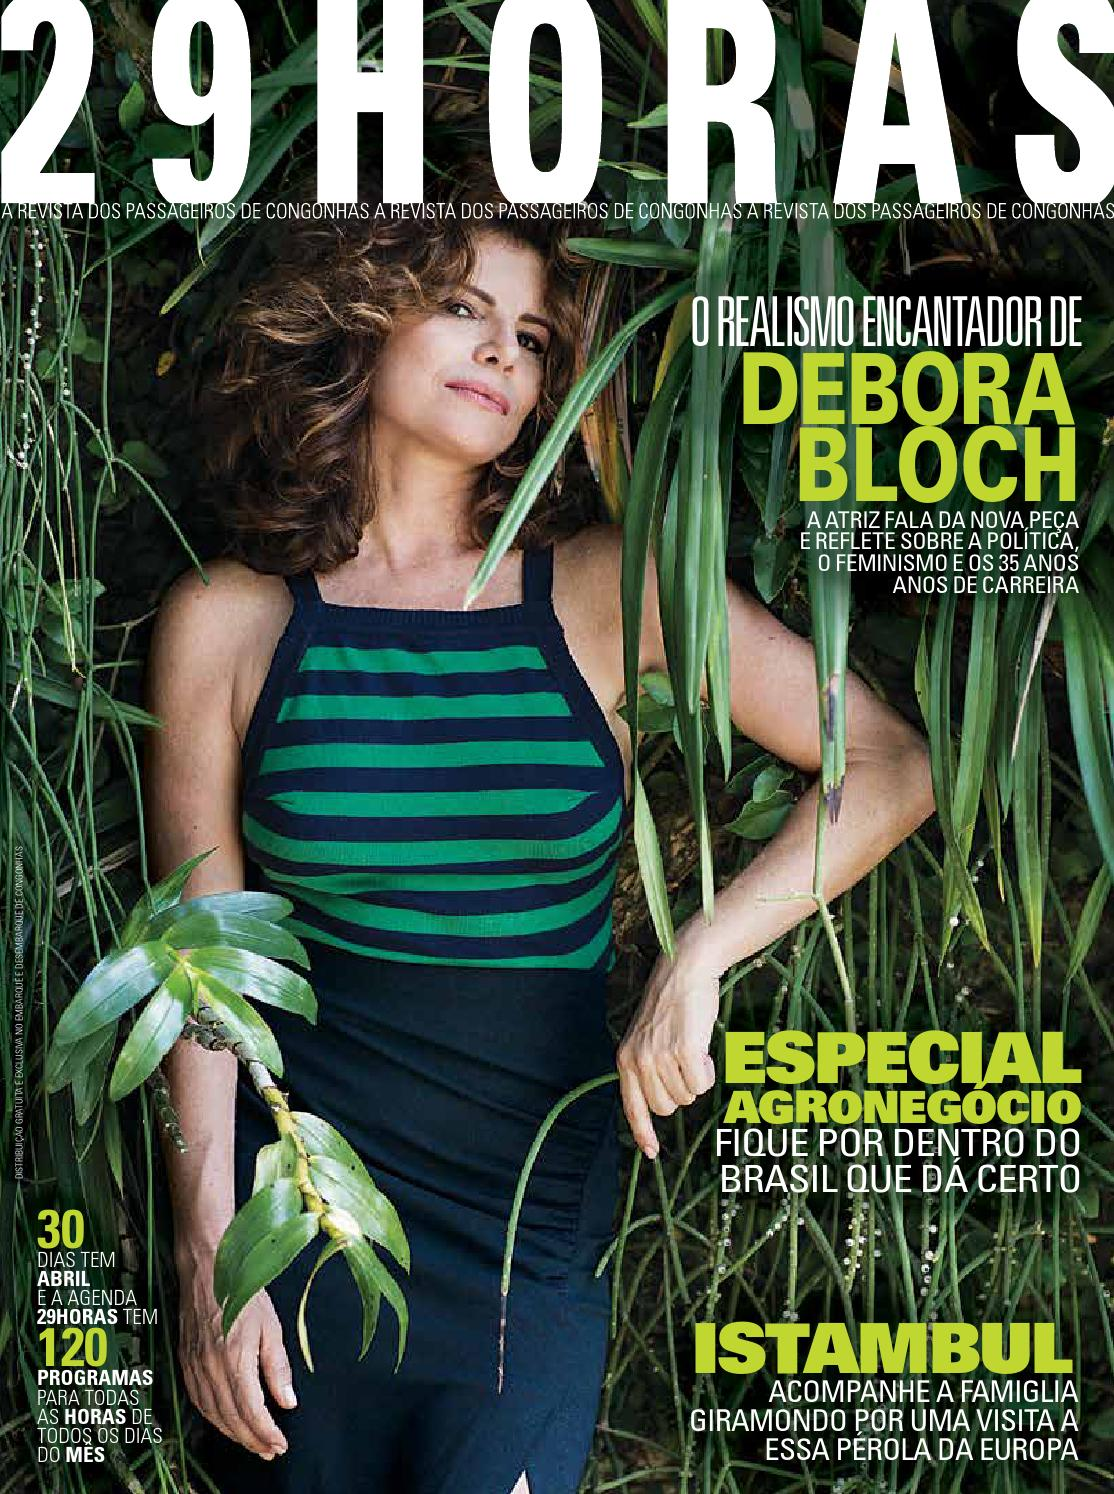 revista 29HORAS - ed. 78 - abril 2016 by 29HORAS - issuu 6ae6da4cd0389